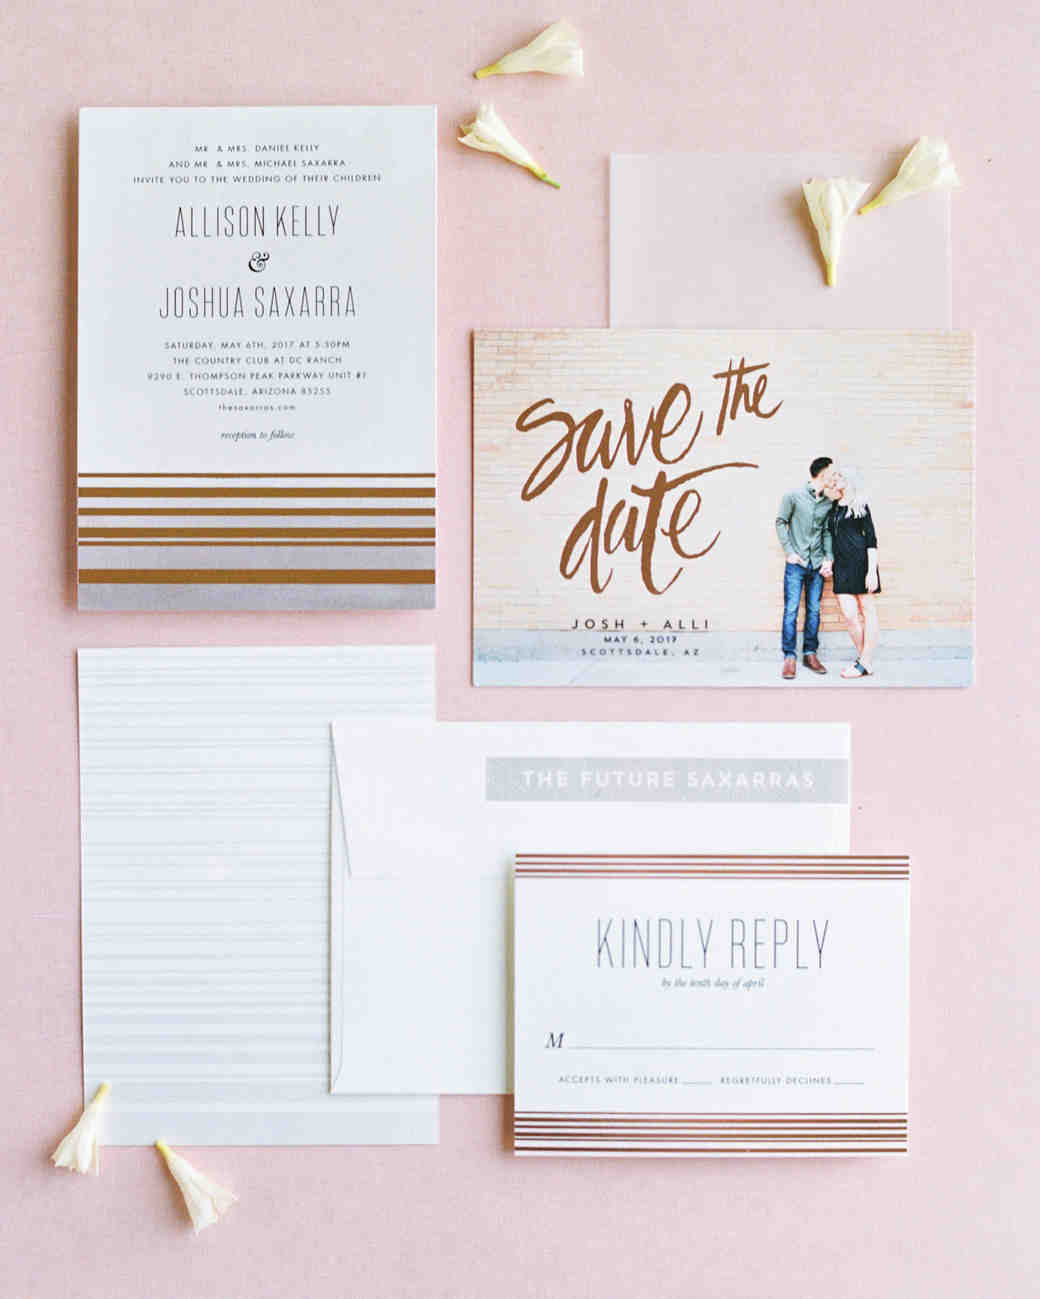 22 Creative Save-the-Dates to Kick Off Your Wedding | Martha Stewart ...